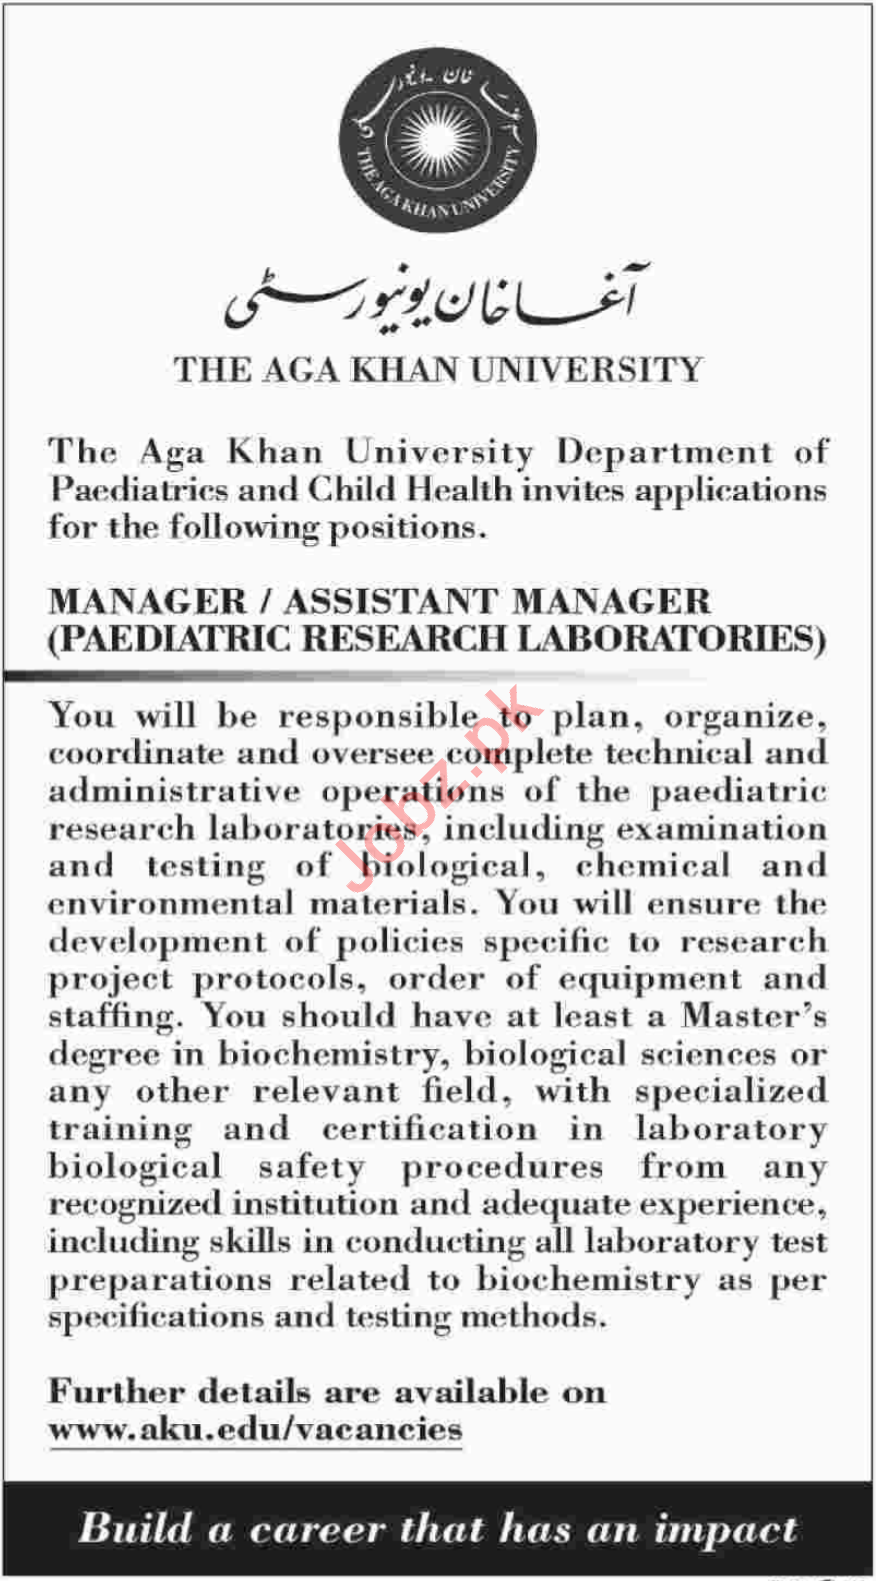 The Aga Khan University AKU Karachi Jobs 2018 for Manager